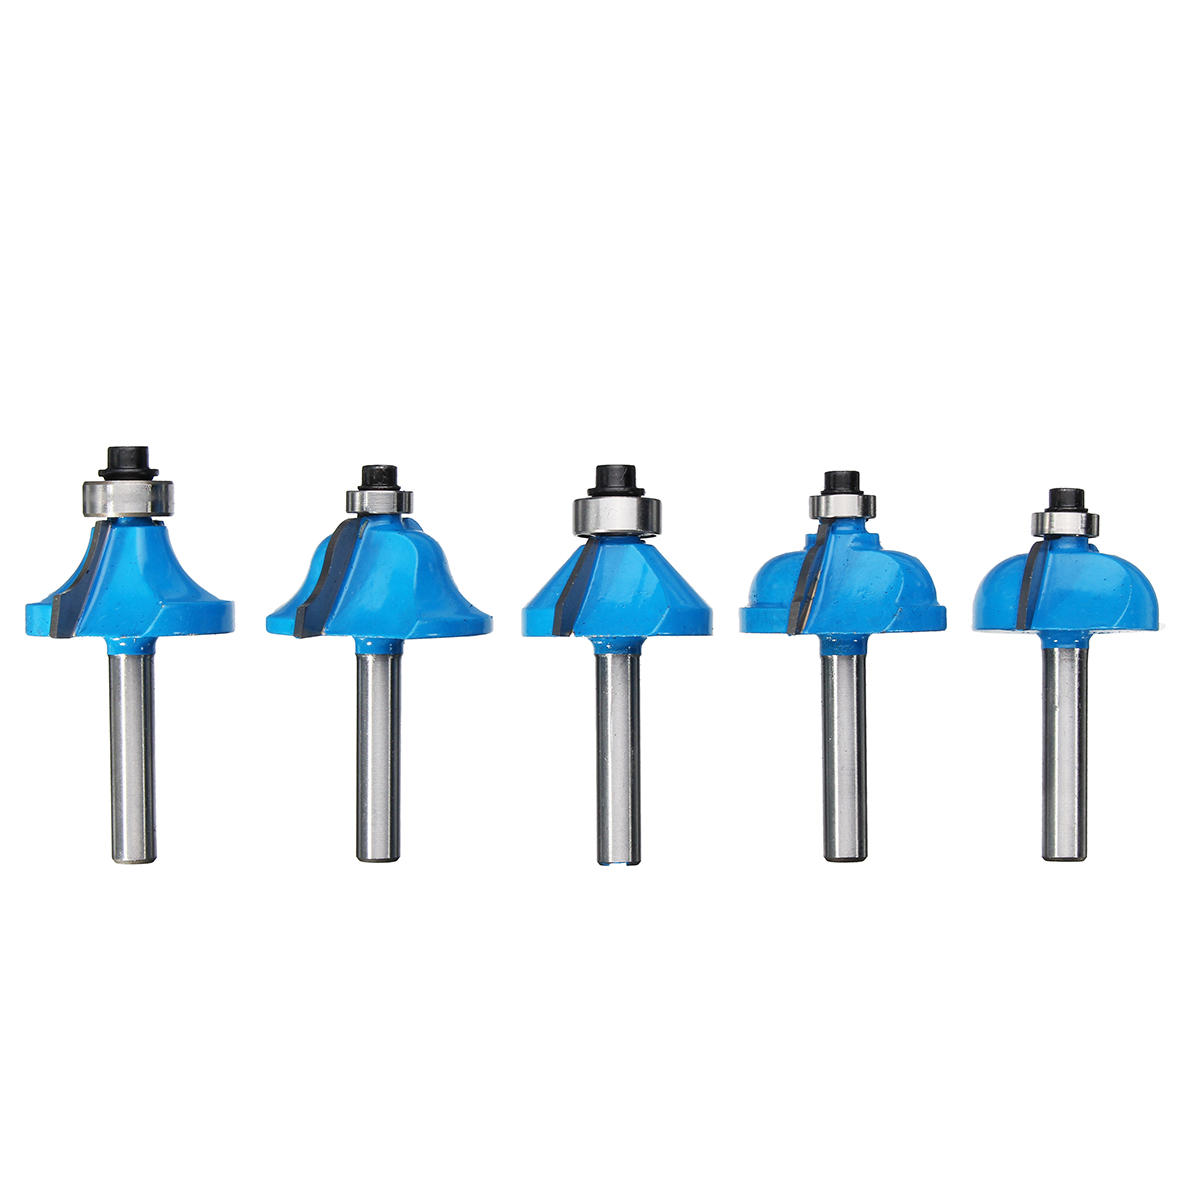 Drillpro RB15 3pcs 1/4 Inch Round Rail Stile Router Bits Wood Working Cutter - 9